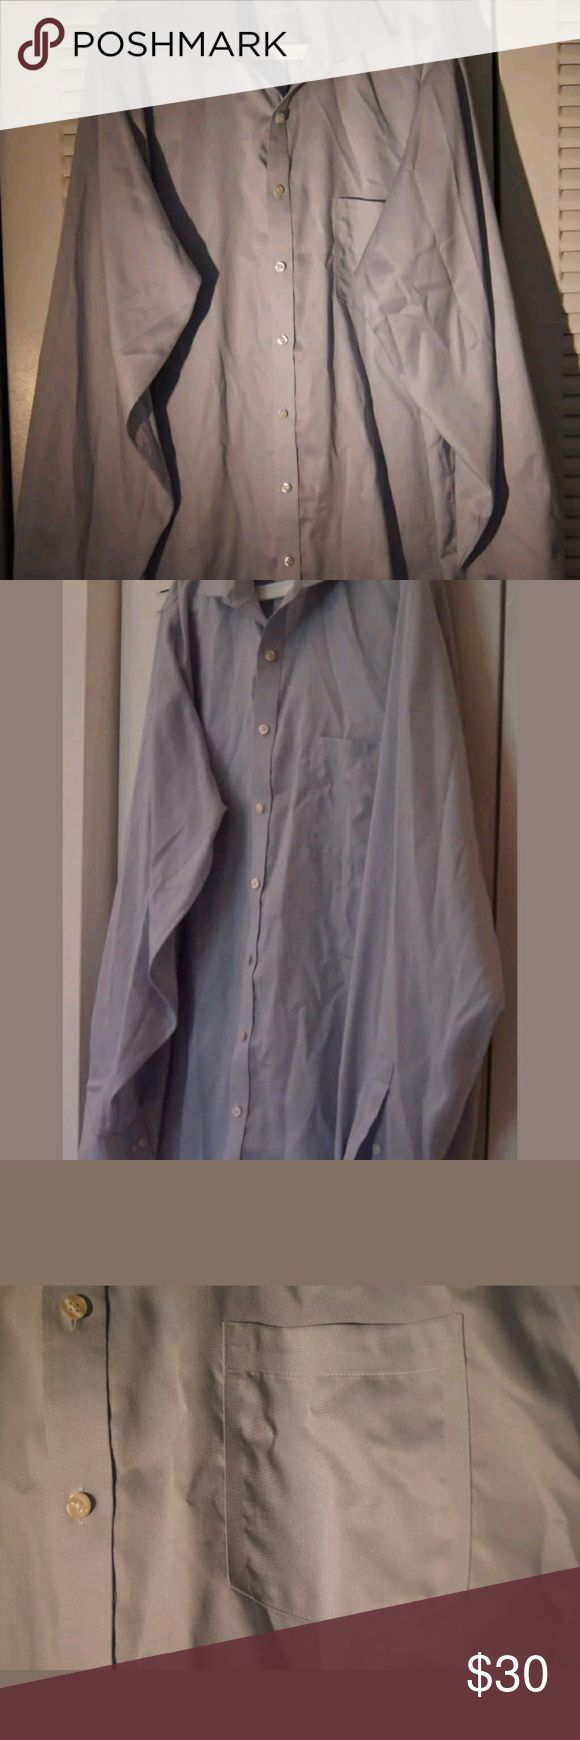 MICHAEL KORS NON IRON DRESS SHIRT BIG & TALL Imported.  Machine wash warm.  Non iron.  100% Cotton.  Has a pocket in the left chest.  Dress occasion.  Elegant.  High quality.  Satisfaction guaranteed.  Like new.  Very good condition.  Without any stains, rips or holes.  Barely used.  Great price.  Excellent purchase choice. You will not regret. Michael Kors Shirts Dress Shirts